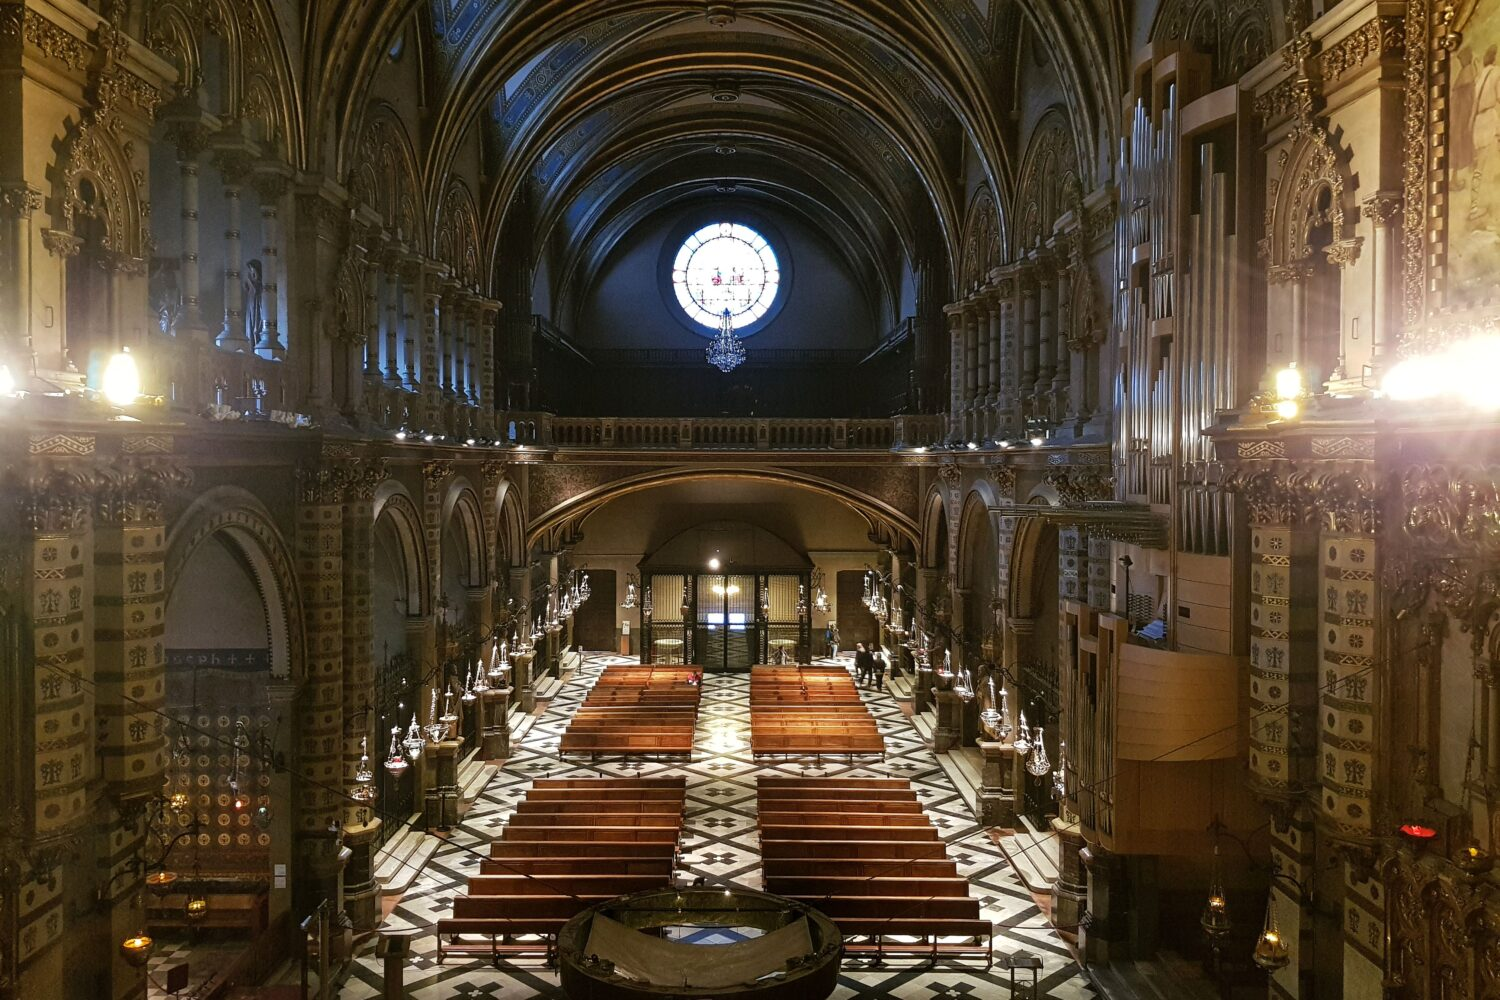 The main nave of the Montserrat Basilica